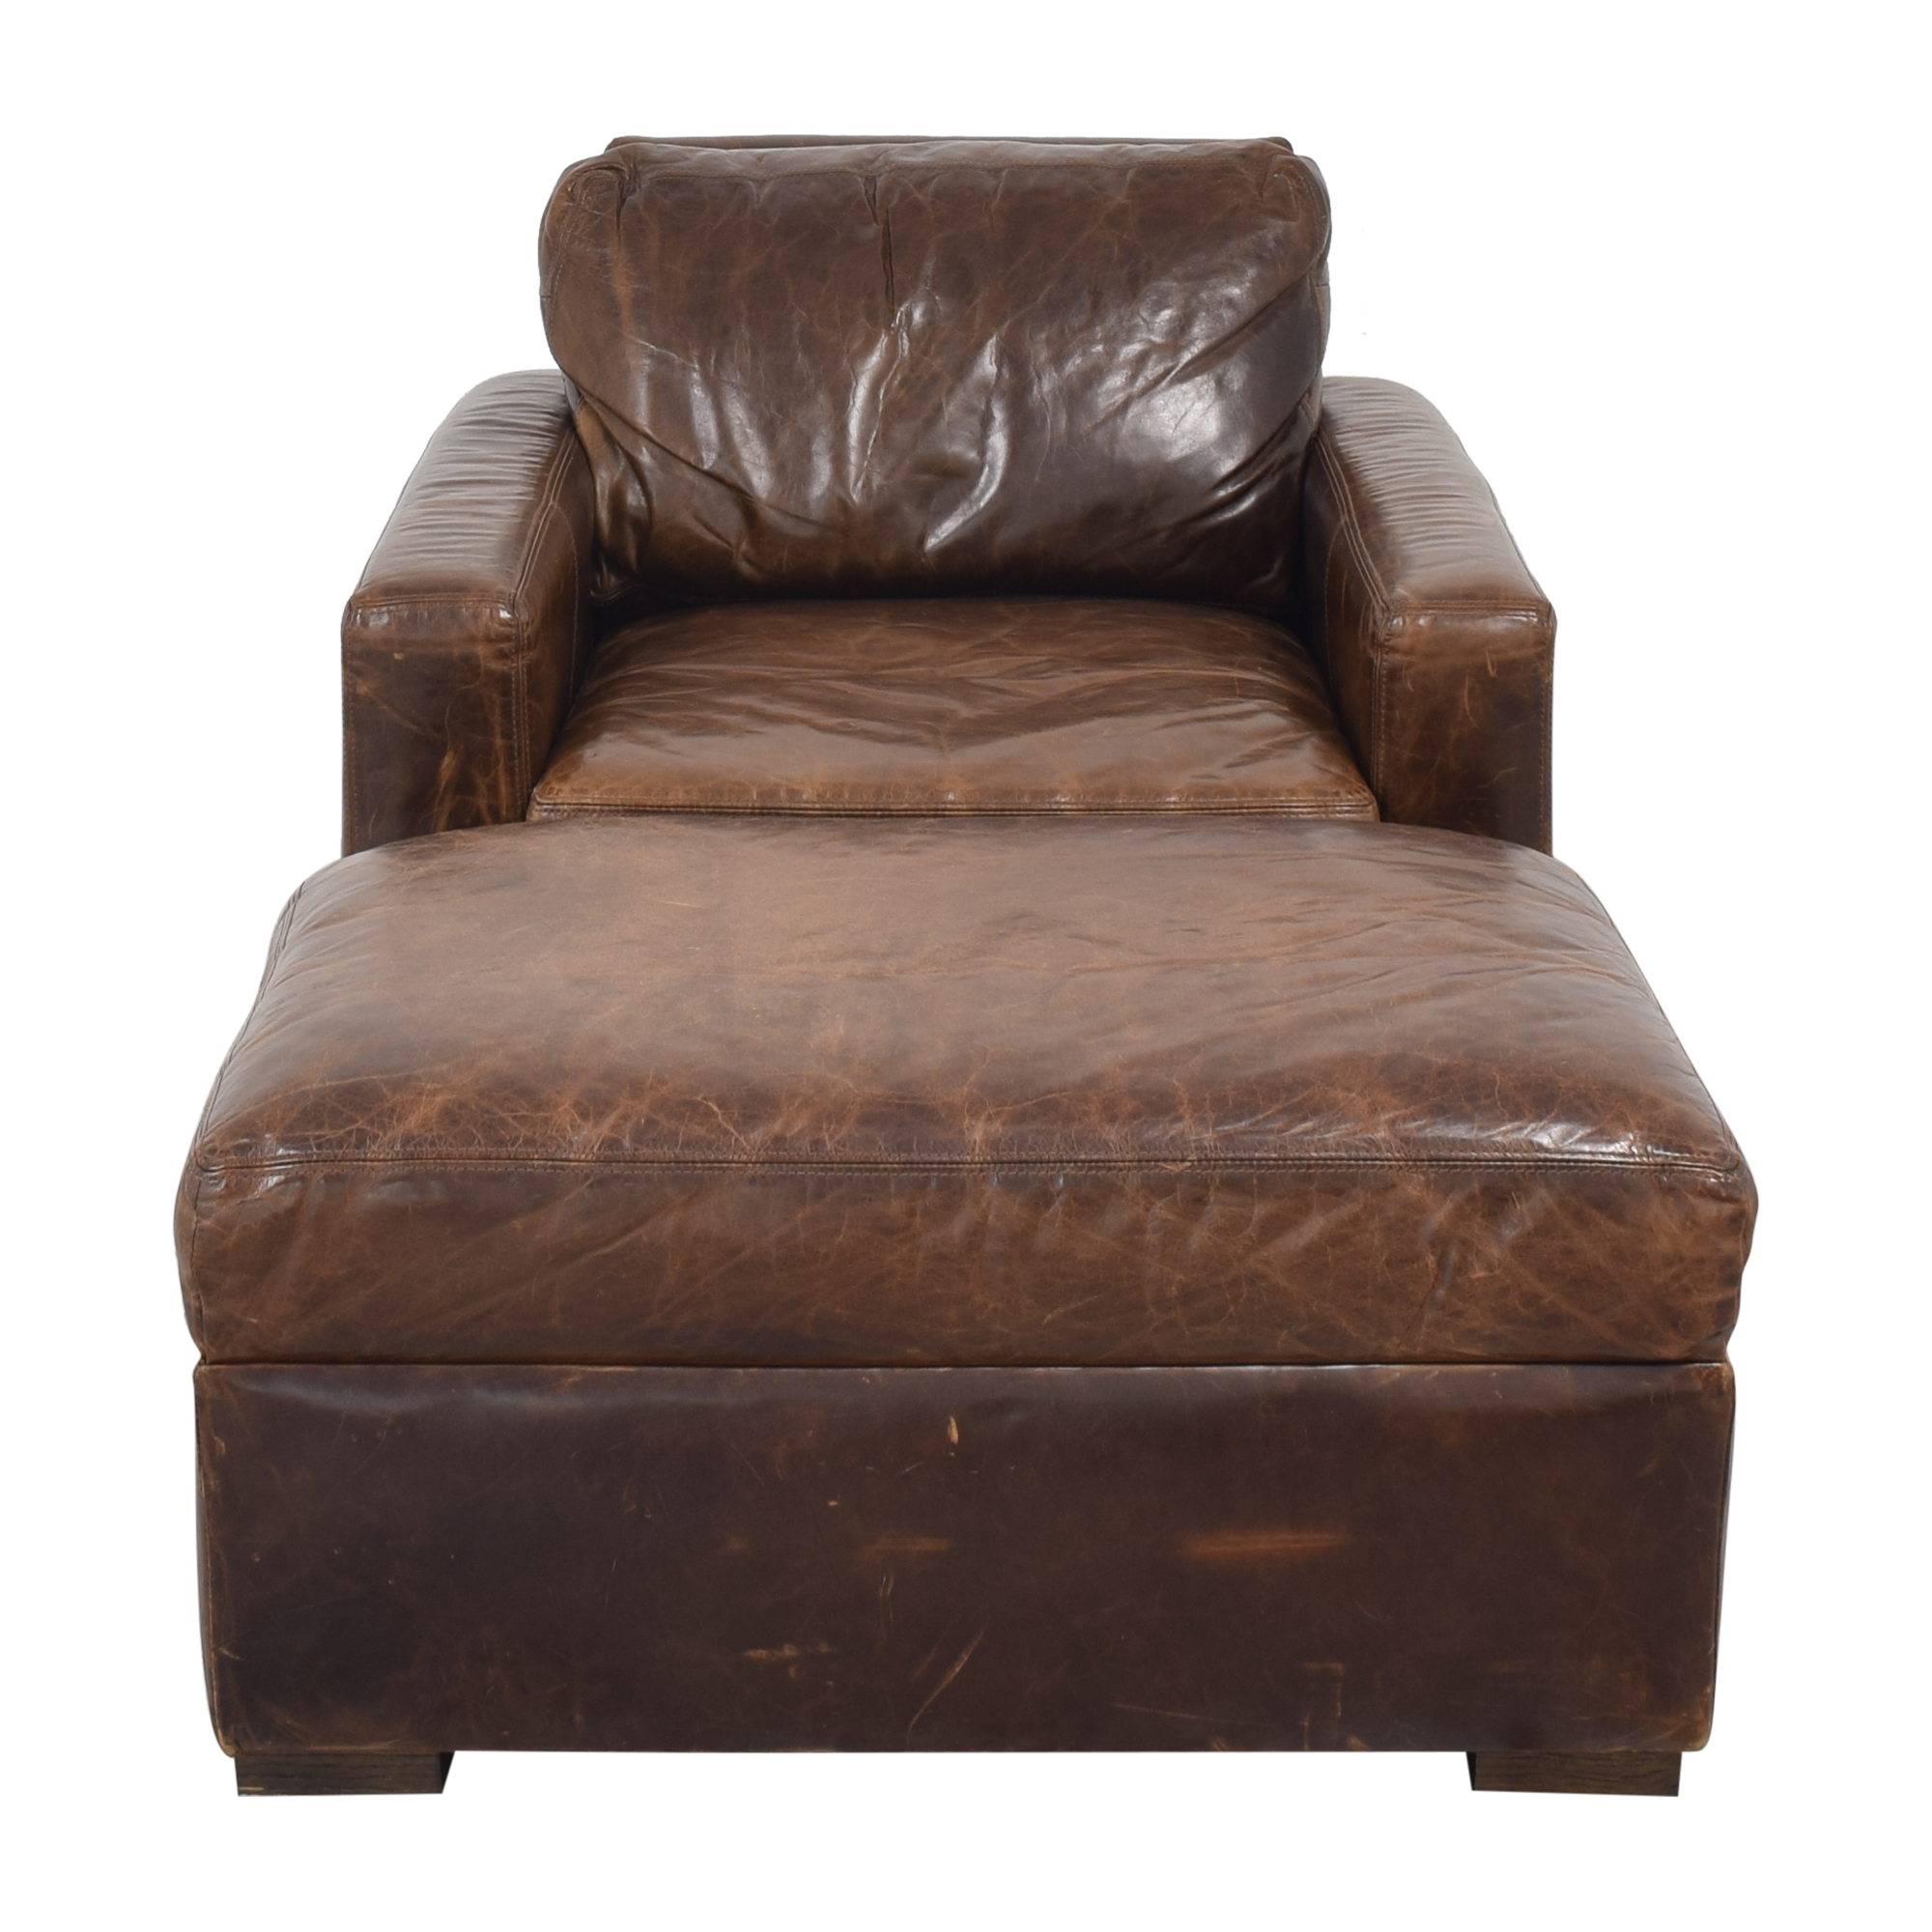 Restoration Hardware Restoration Hardware Petite Maxwell Chair and Ottoman nyc